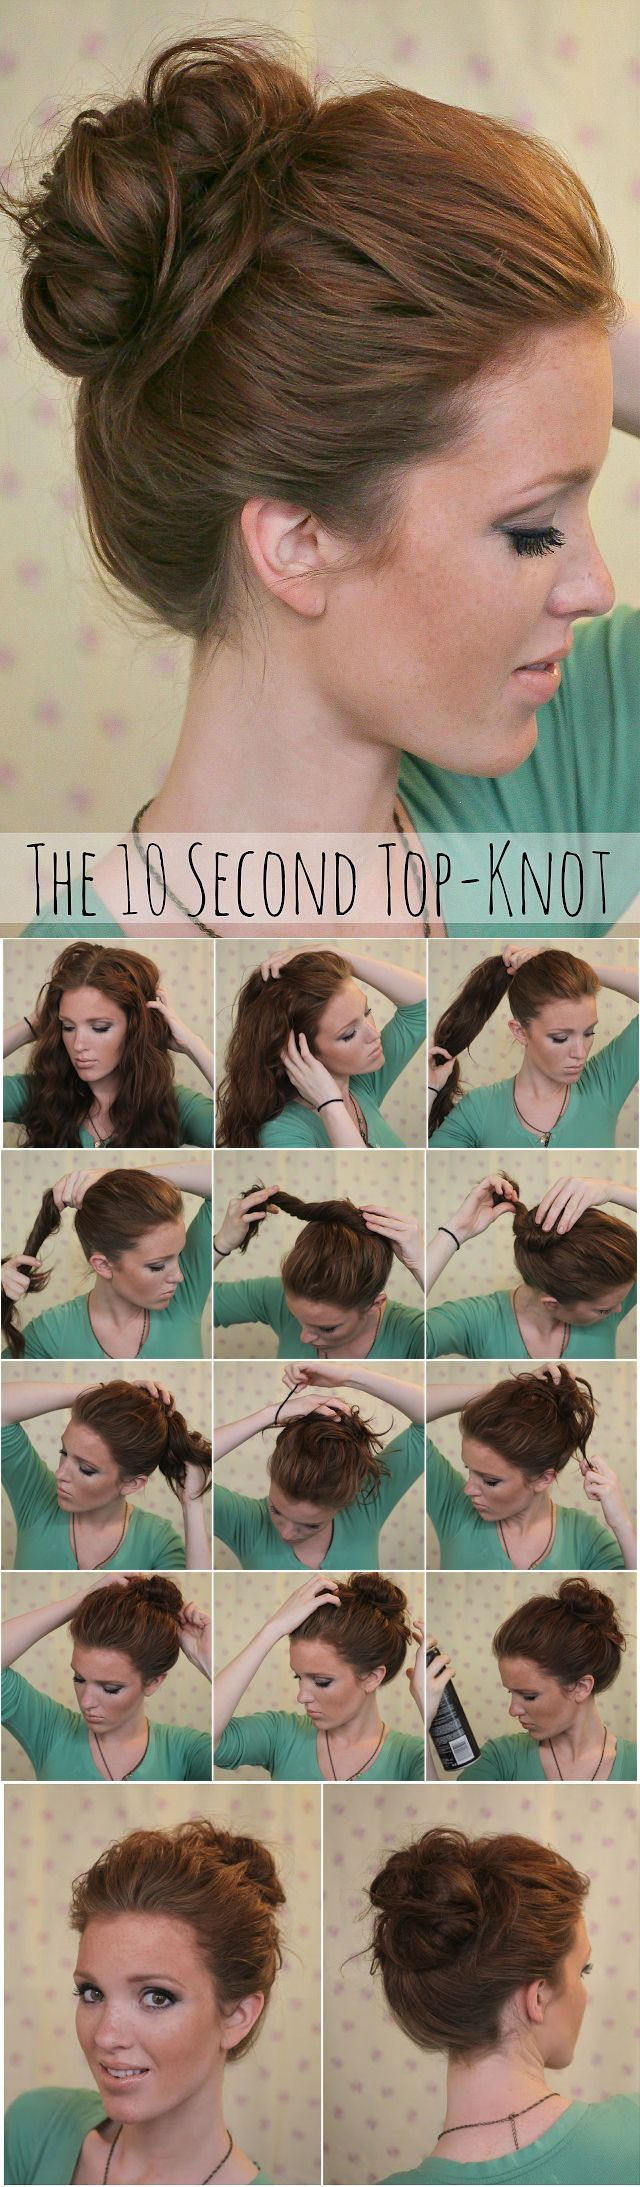 Celtic Knot Hair Tutorial... i tied about 1000 of these for my wedding, i can totally figure this out in my hair right?